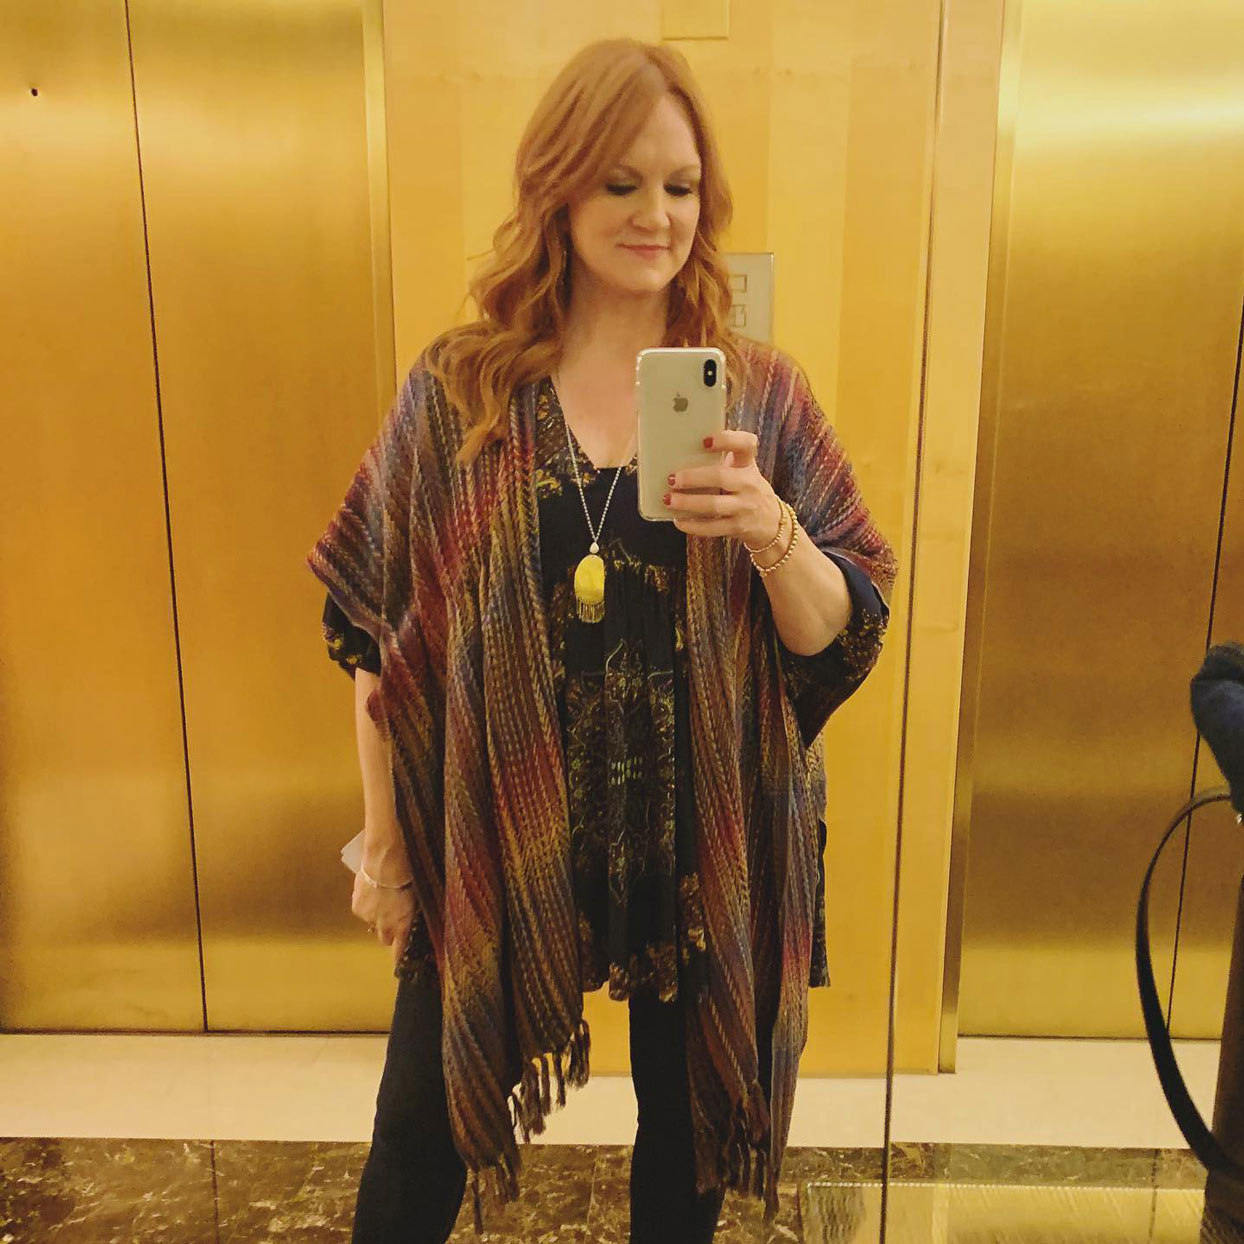 Ree Drummond Ditched Keto & Lost a Pant Size by Doing Fun Workouts at Home